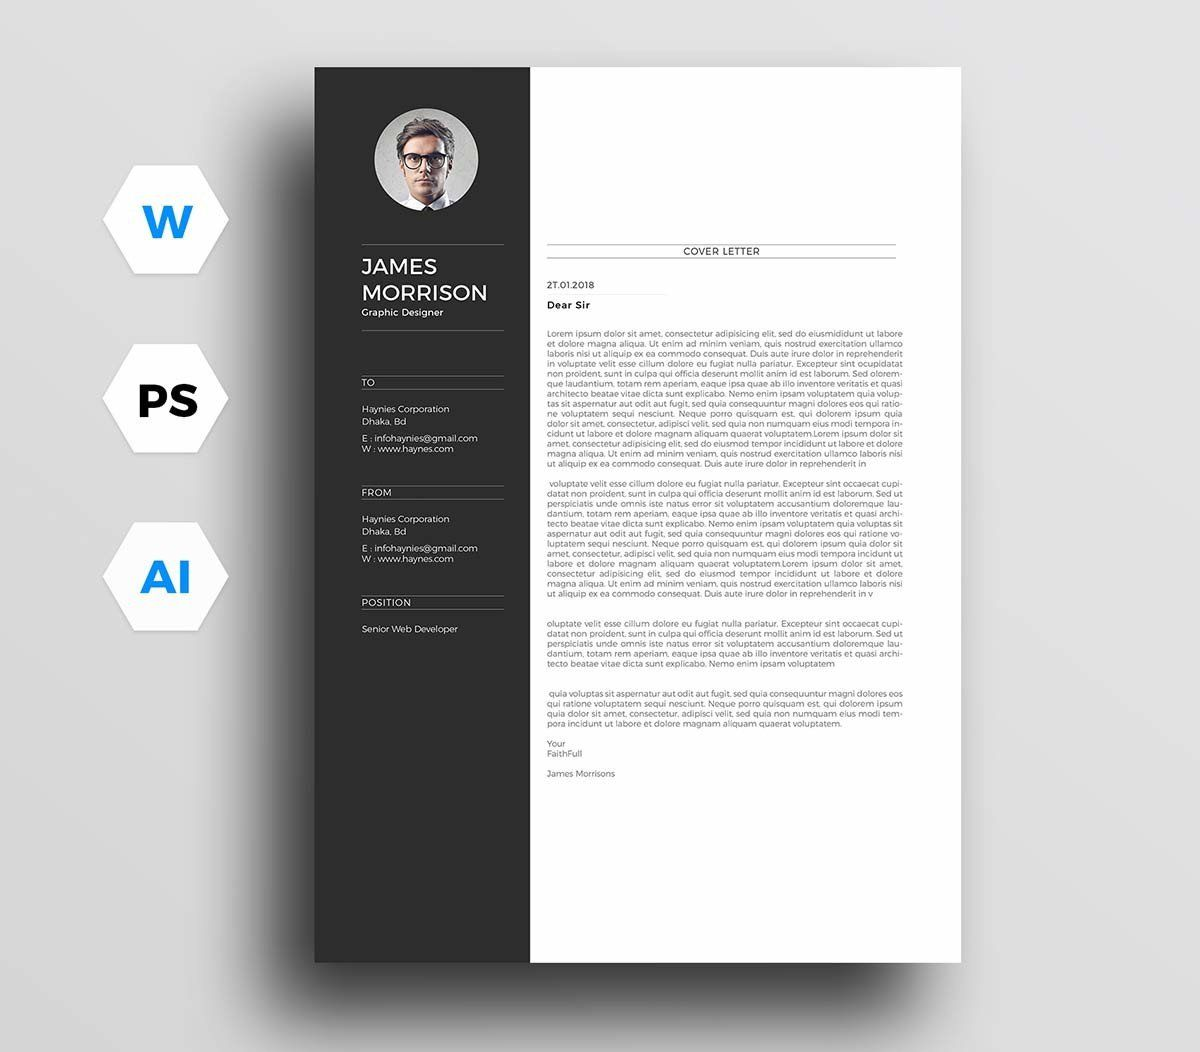 001 Striking Resume Cover Letter Template Docx Example Full